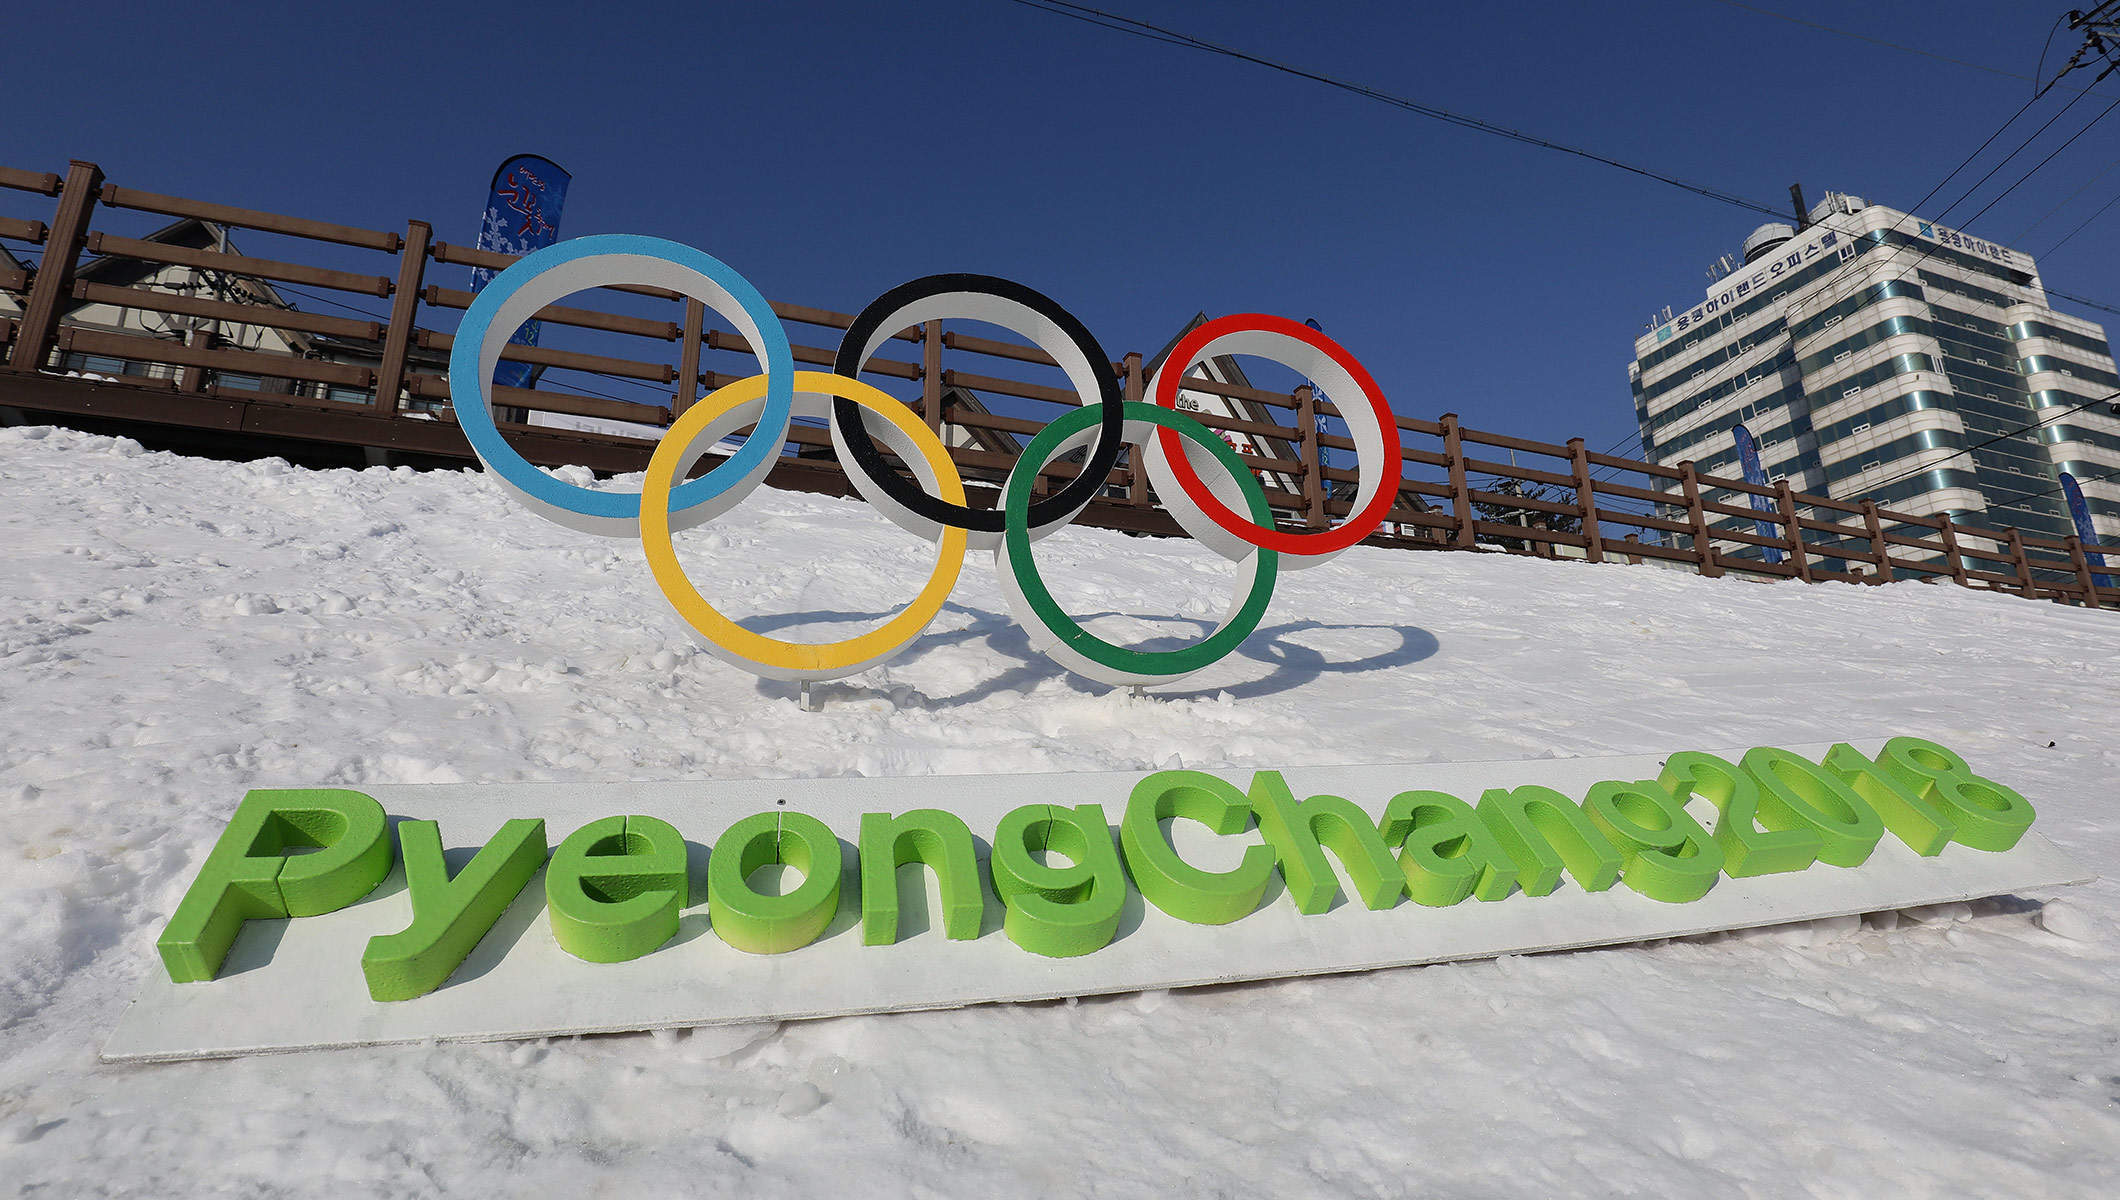 PyeongChang 2018 Olympic Winter Games: these are the companies that help make the Olympics happen